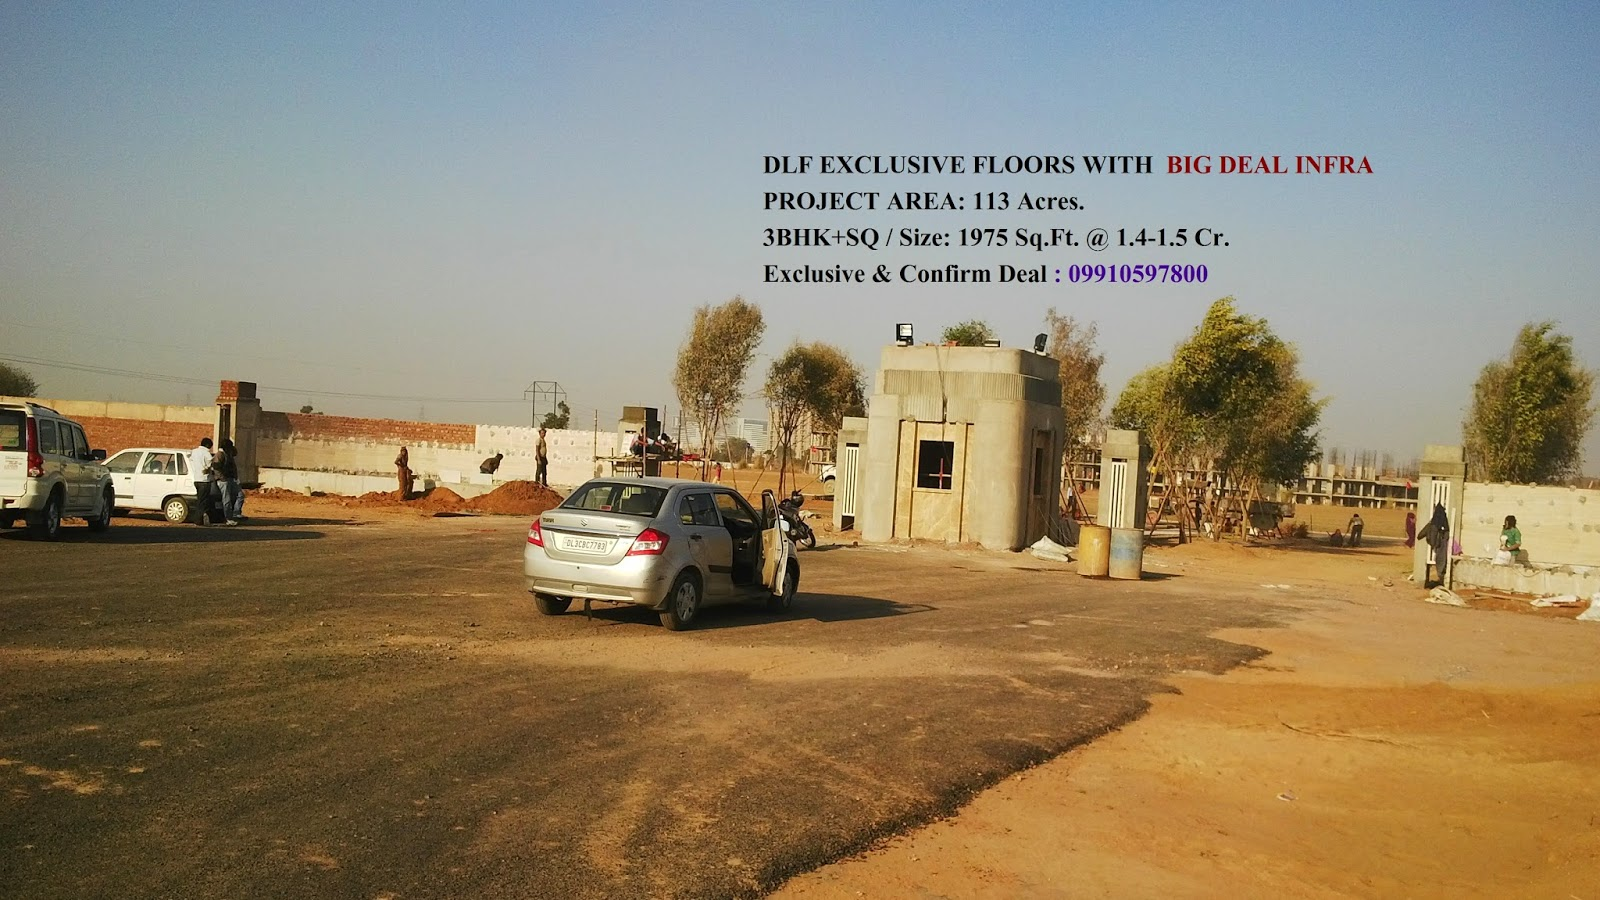 DLF Gurgaon, dlf new launch, dlf on nh8, dlf upcoming township gurgaon, dlf sec77 on NH8 Gurgaon, dlf exclusive floors on nh8, dlf prelaunch gurgaon, dlf independent floors on highway gurgaon, Independent floors dlf in sec 77 gurgaon, dlf upcoming project on NH8, DLF Gurgaon new launch township, dlf apartments, dlf fresh booking on NH8 Gurgaon, DLF Authorize Partner Manish, DLF CONFIRM BOOKING, DLF Upcoming Project in Sec77 on NH8 Gurgaon